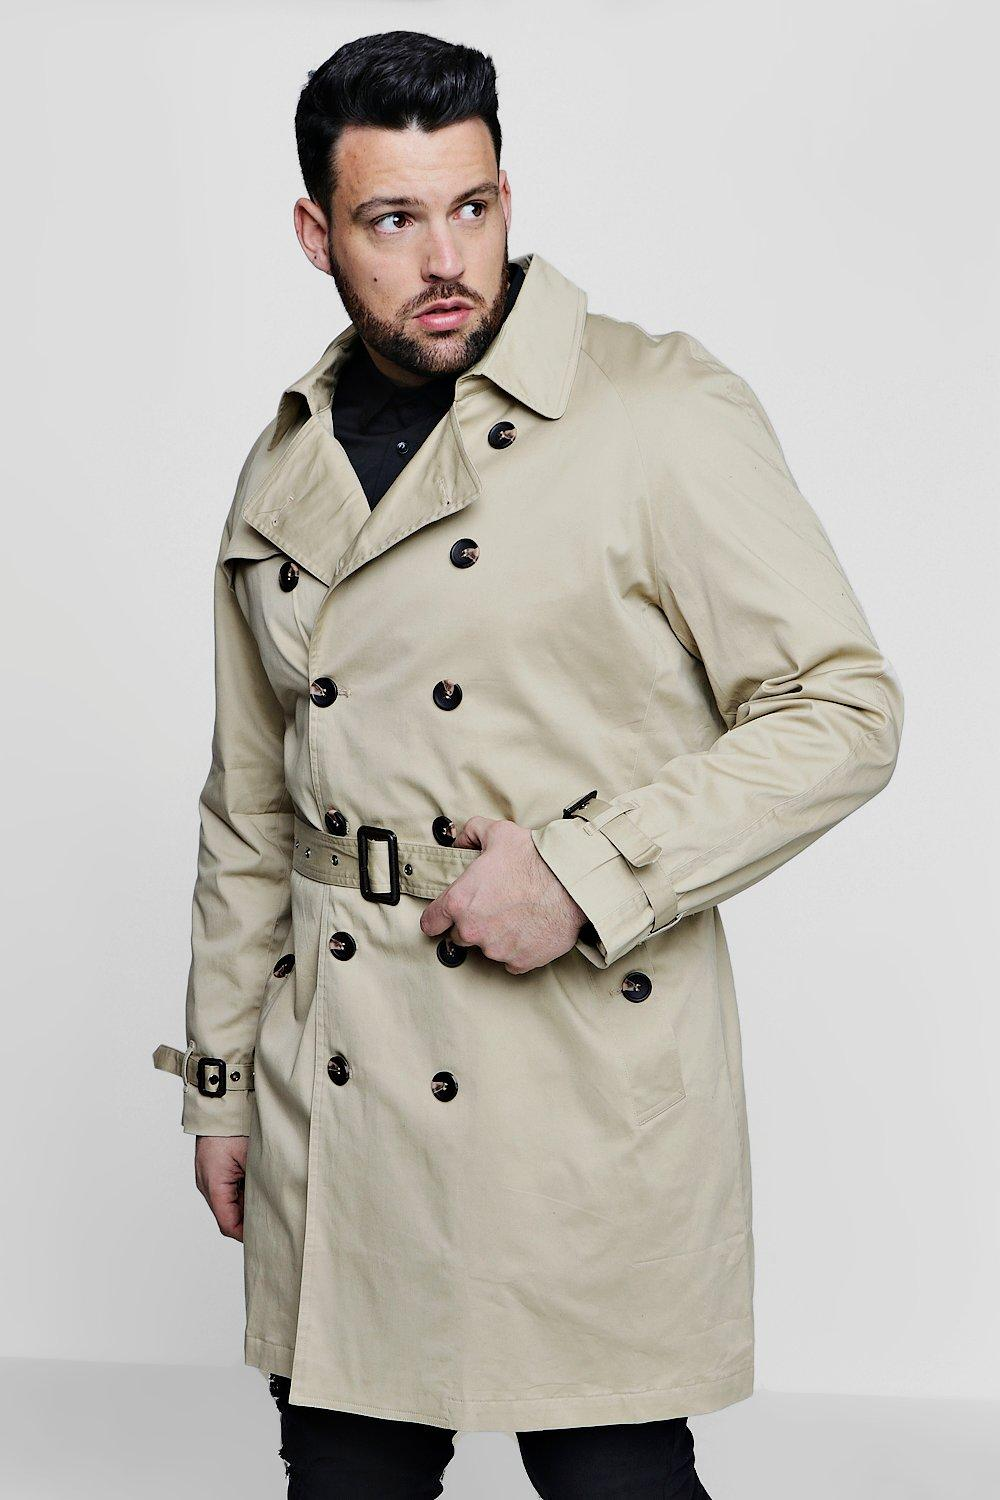 BIG&TALL SMART MACK JACKET